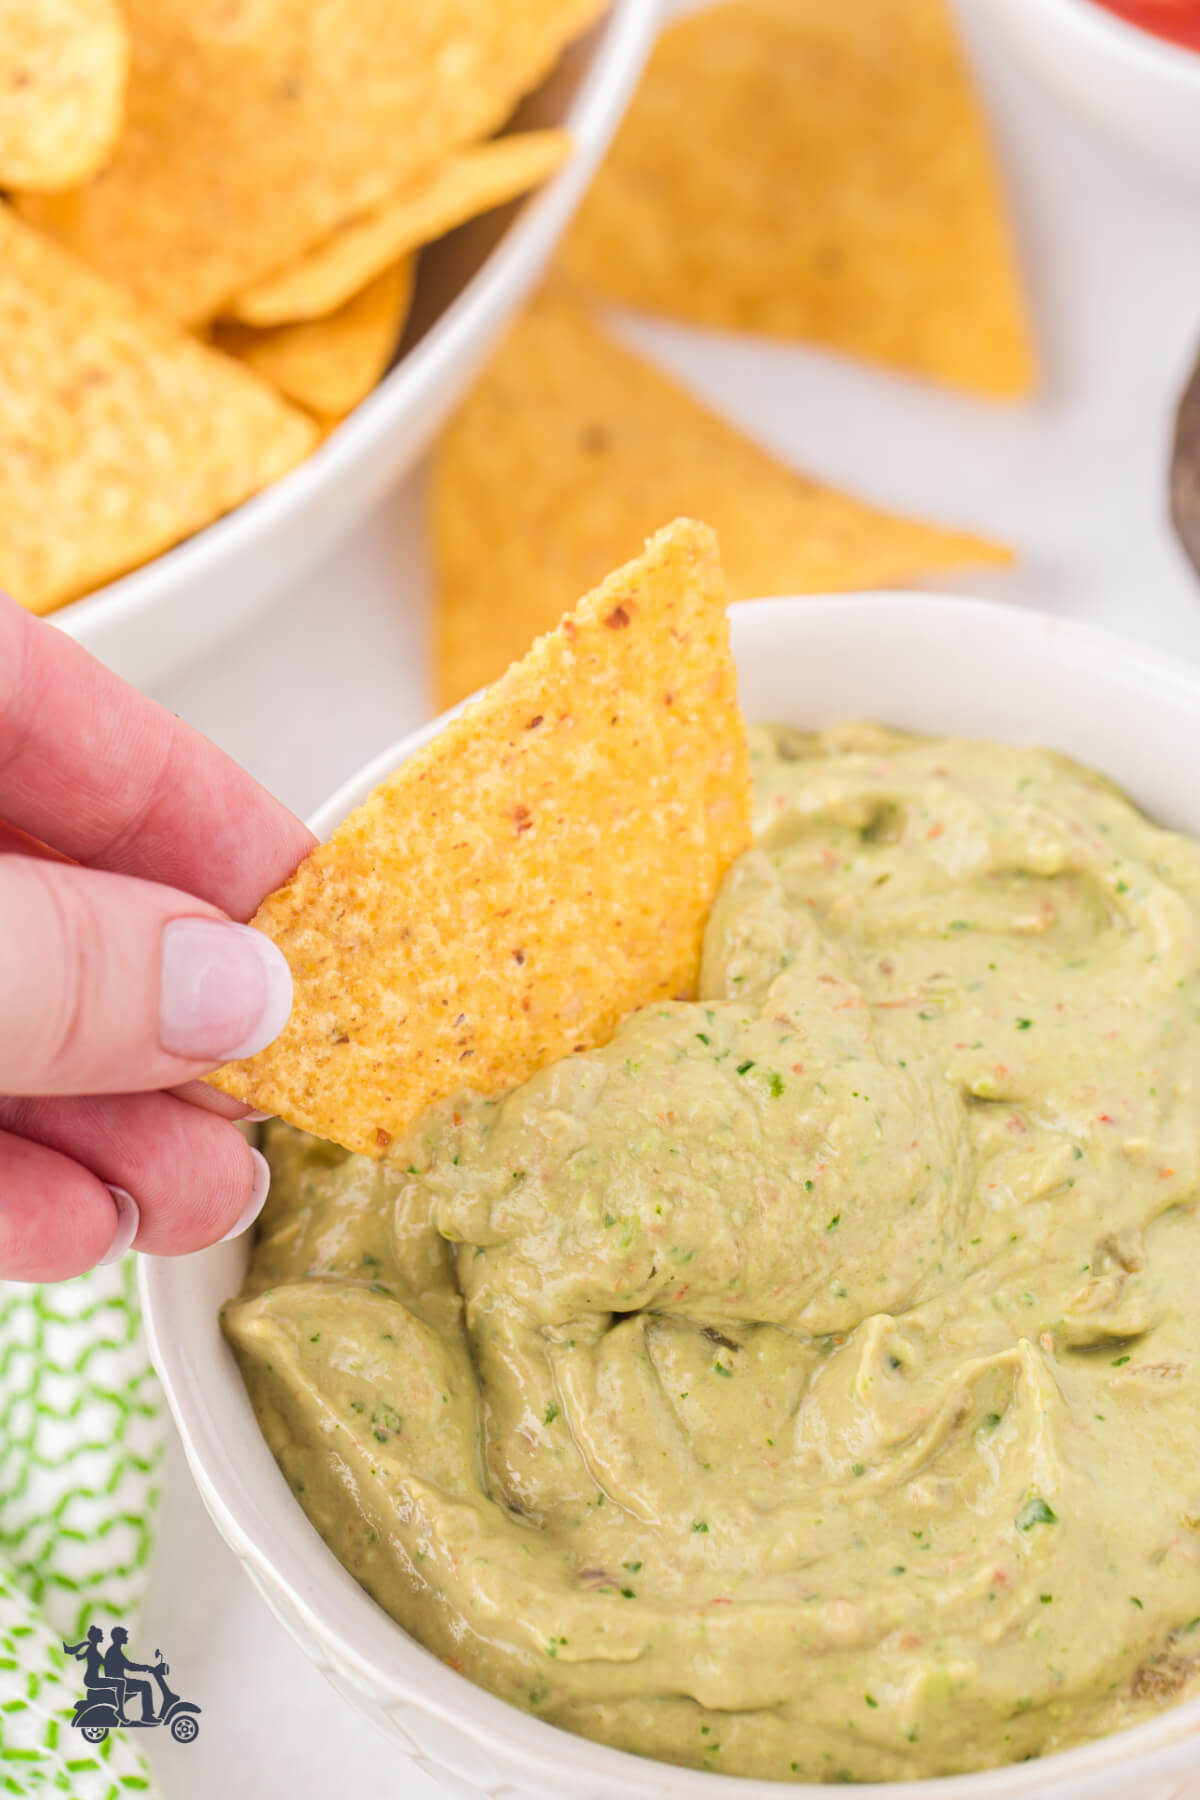 A hand with a tortilla chip dipping into the guacamole salsa.